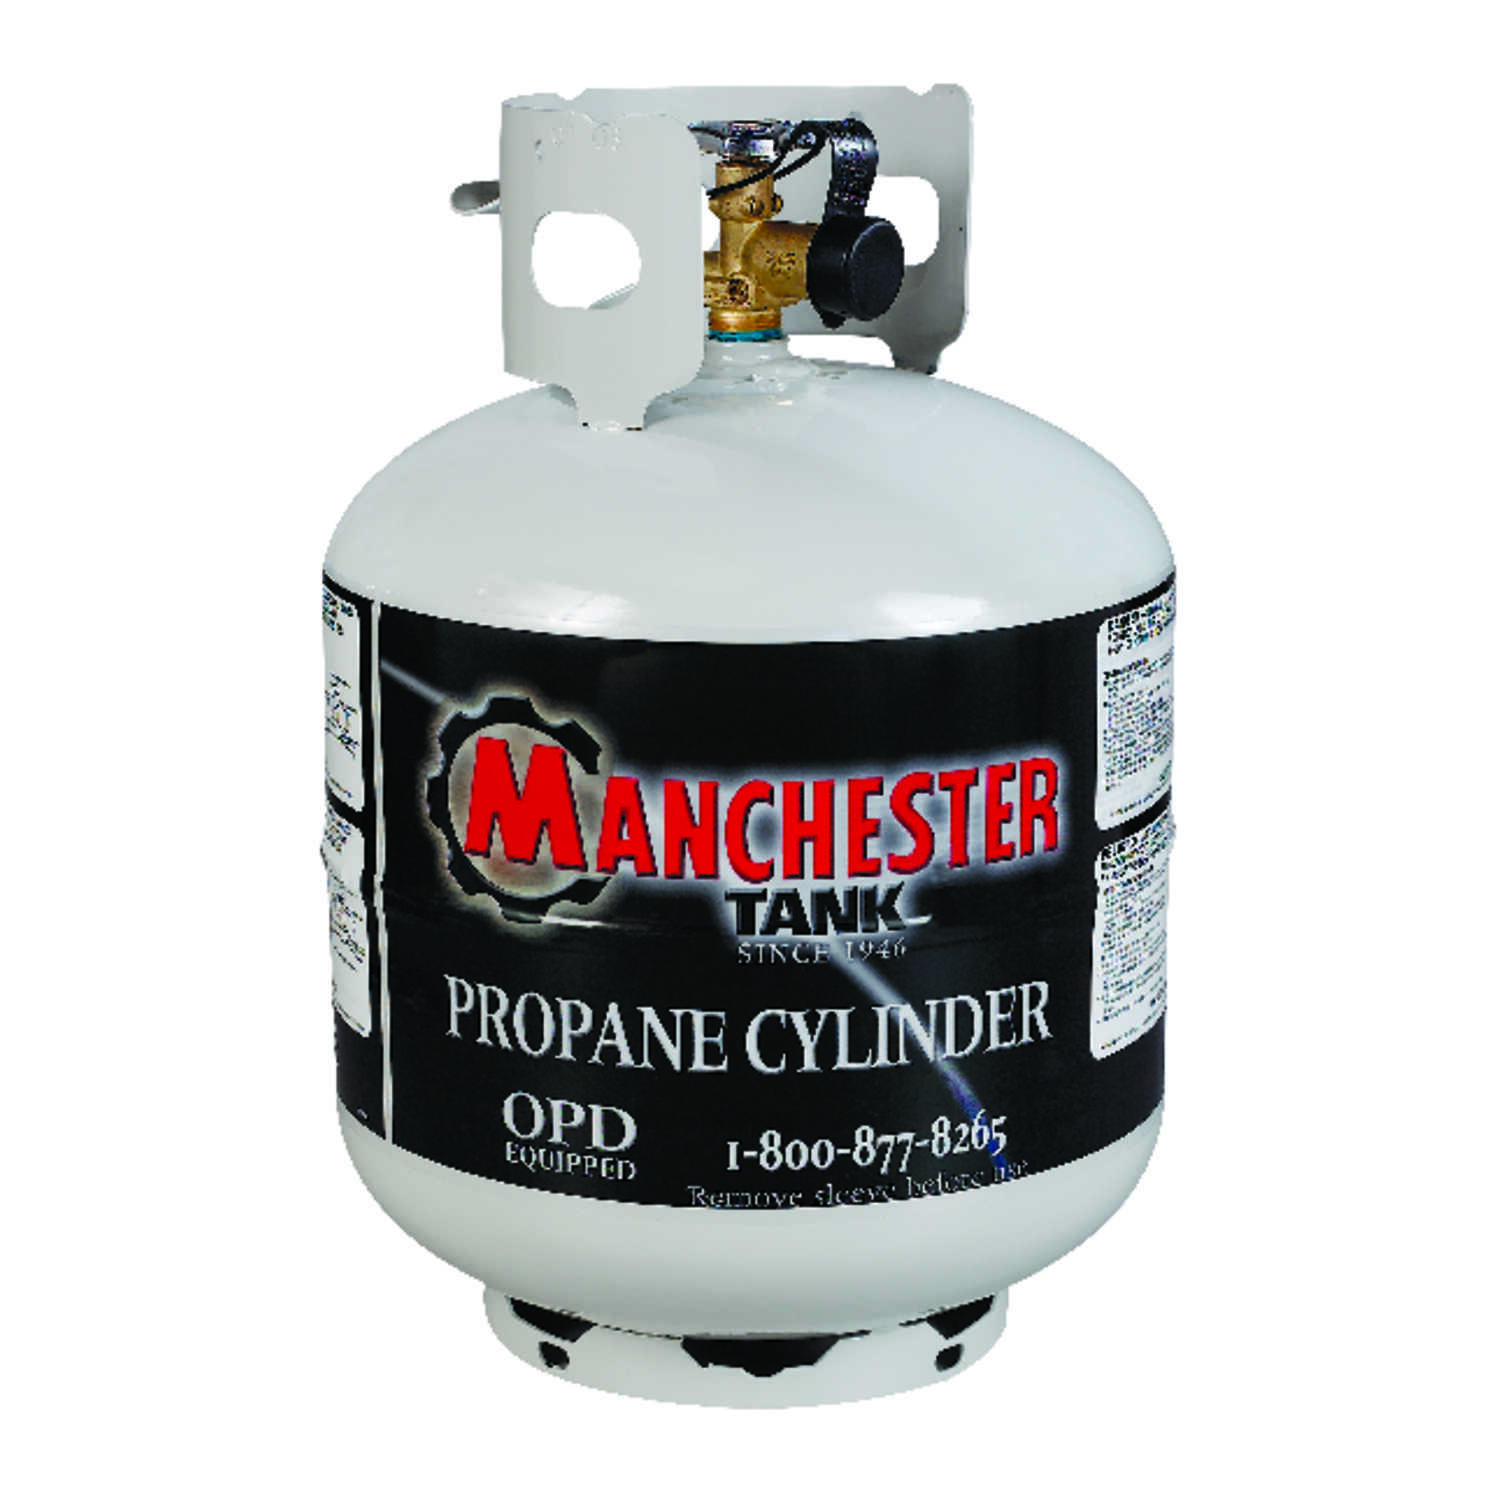 Propane Cylinders and Accessories